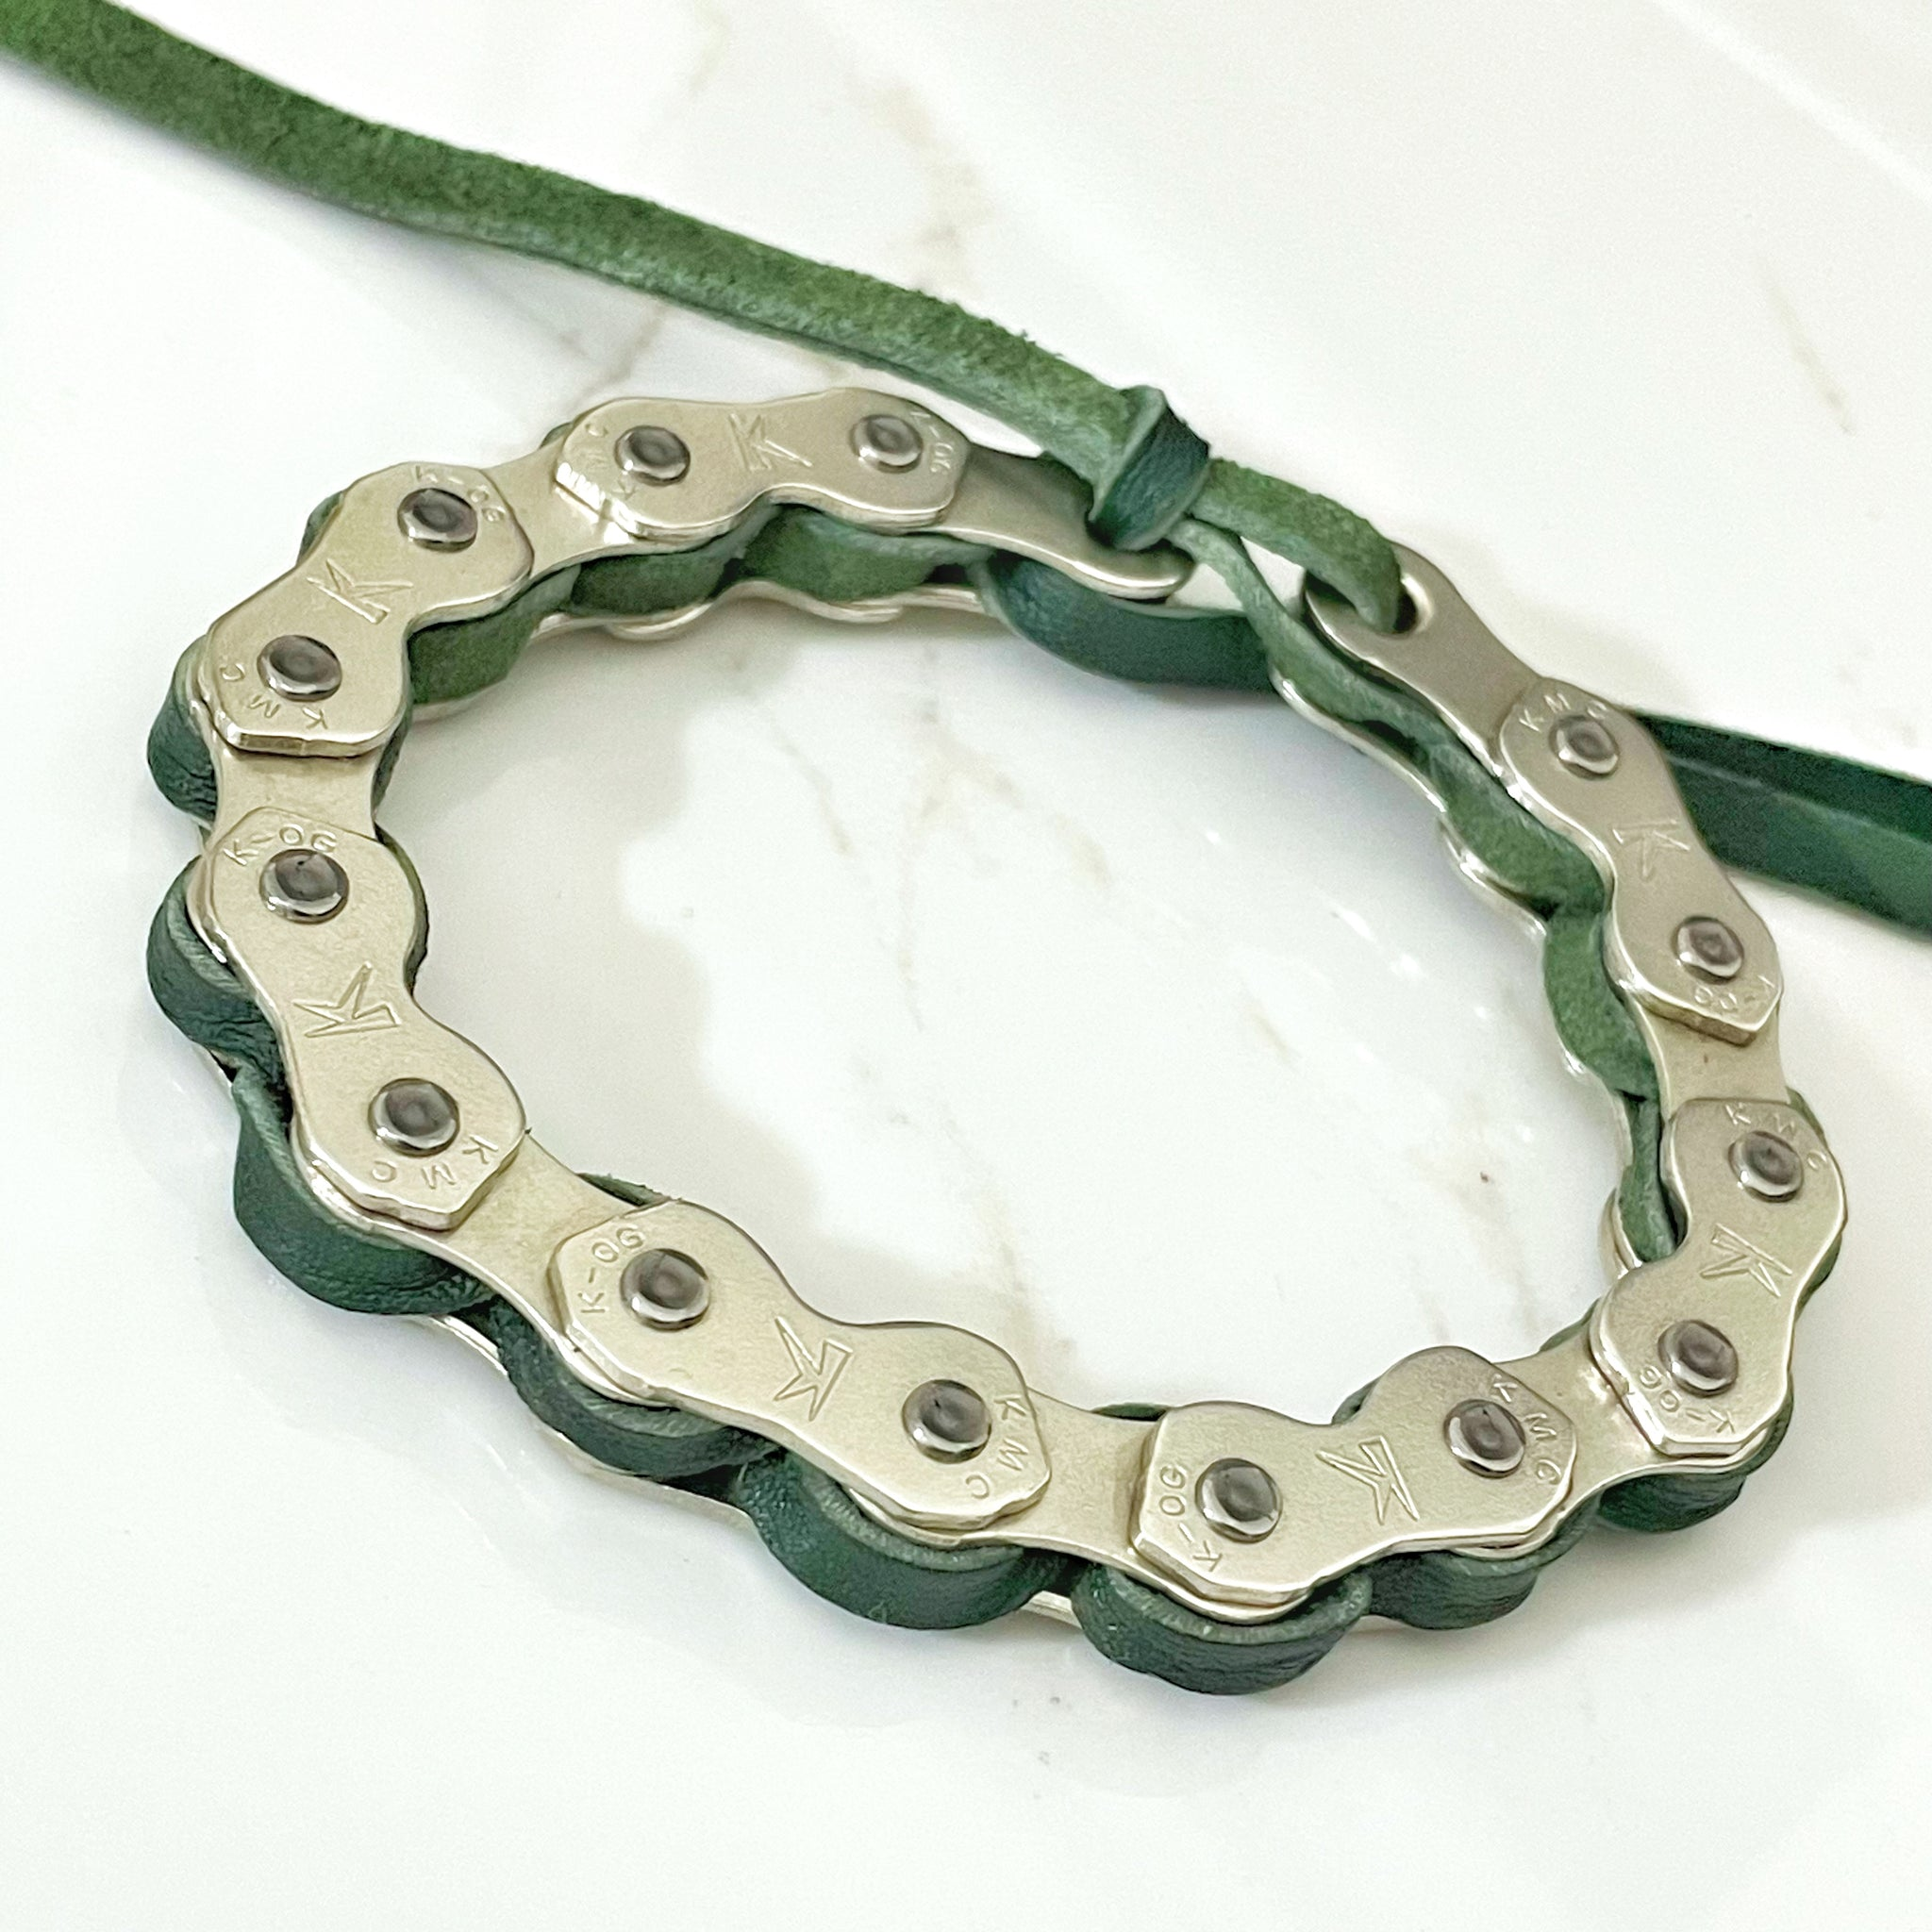 Made-to-order folio phone case